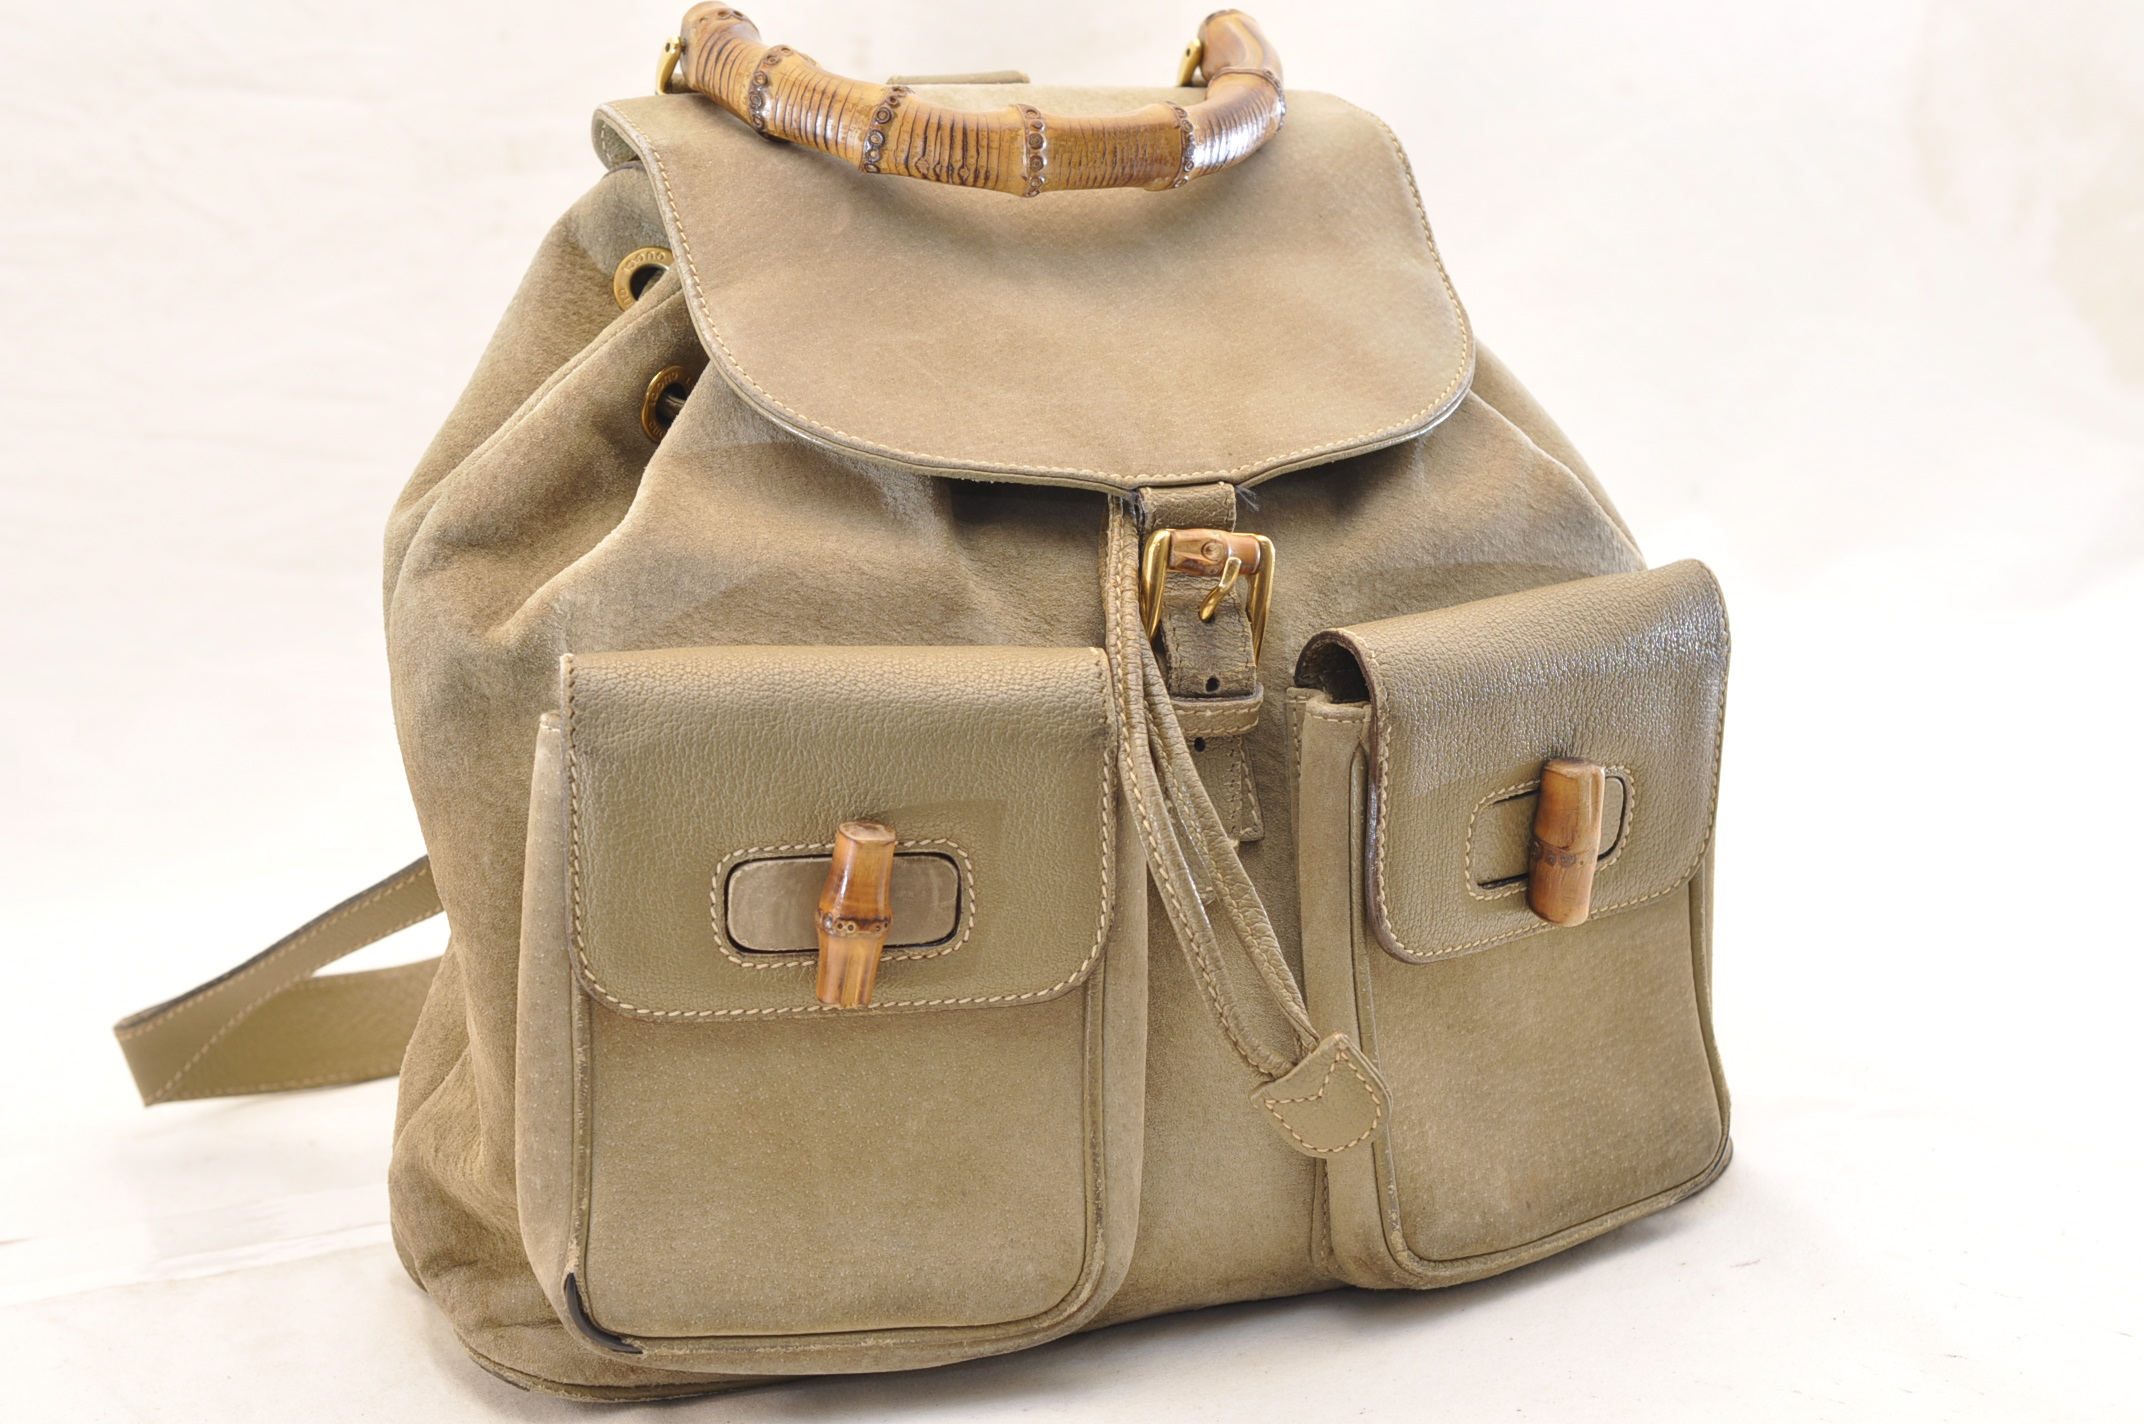 978f3c8e9 GUCCI Bamboo Suede Backpack Knapsack Green Auth 5293. DSC0280-12.jpg ...